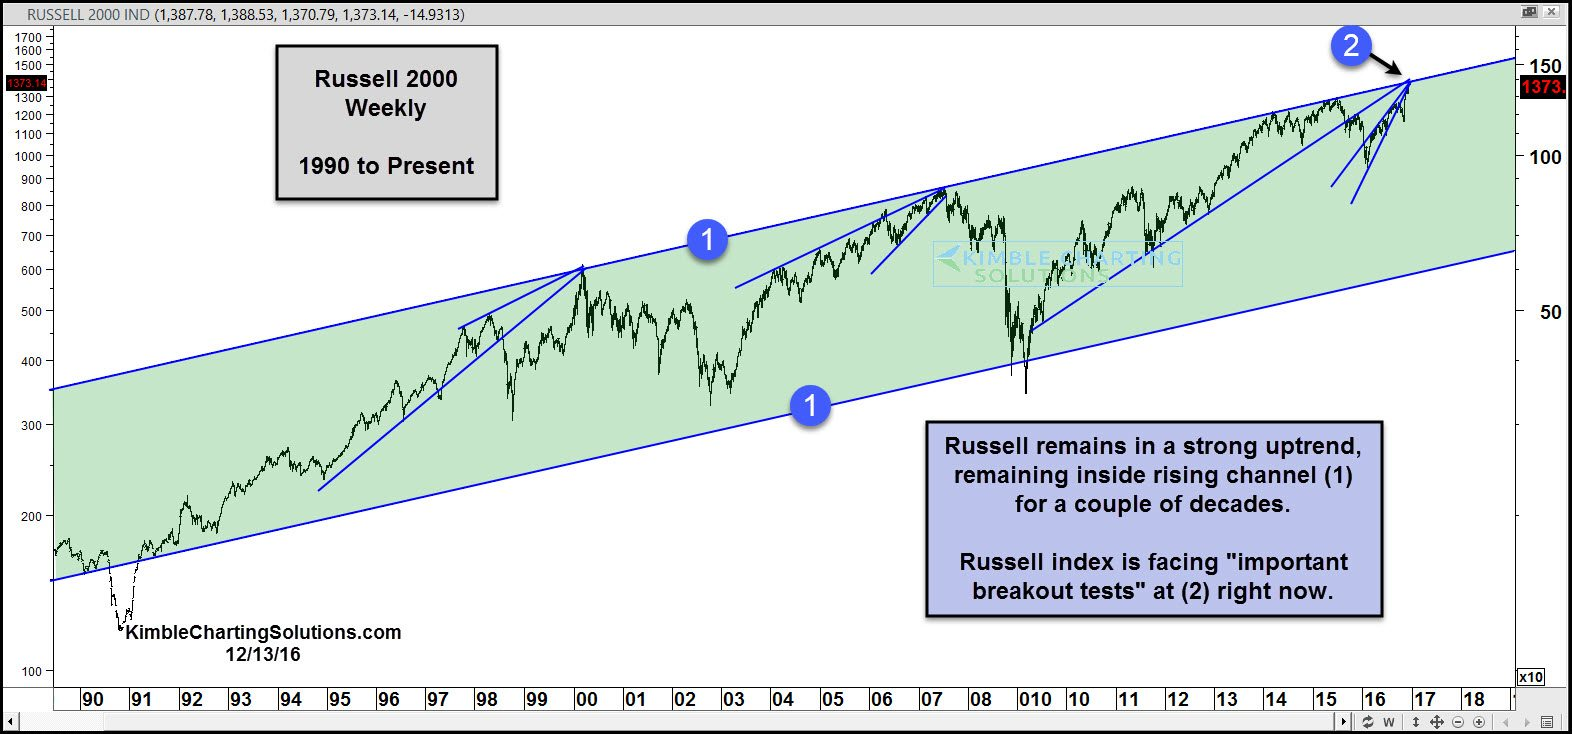 Weekly Russell 2000